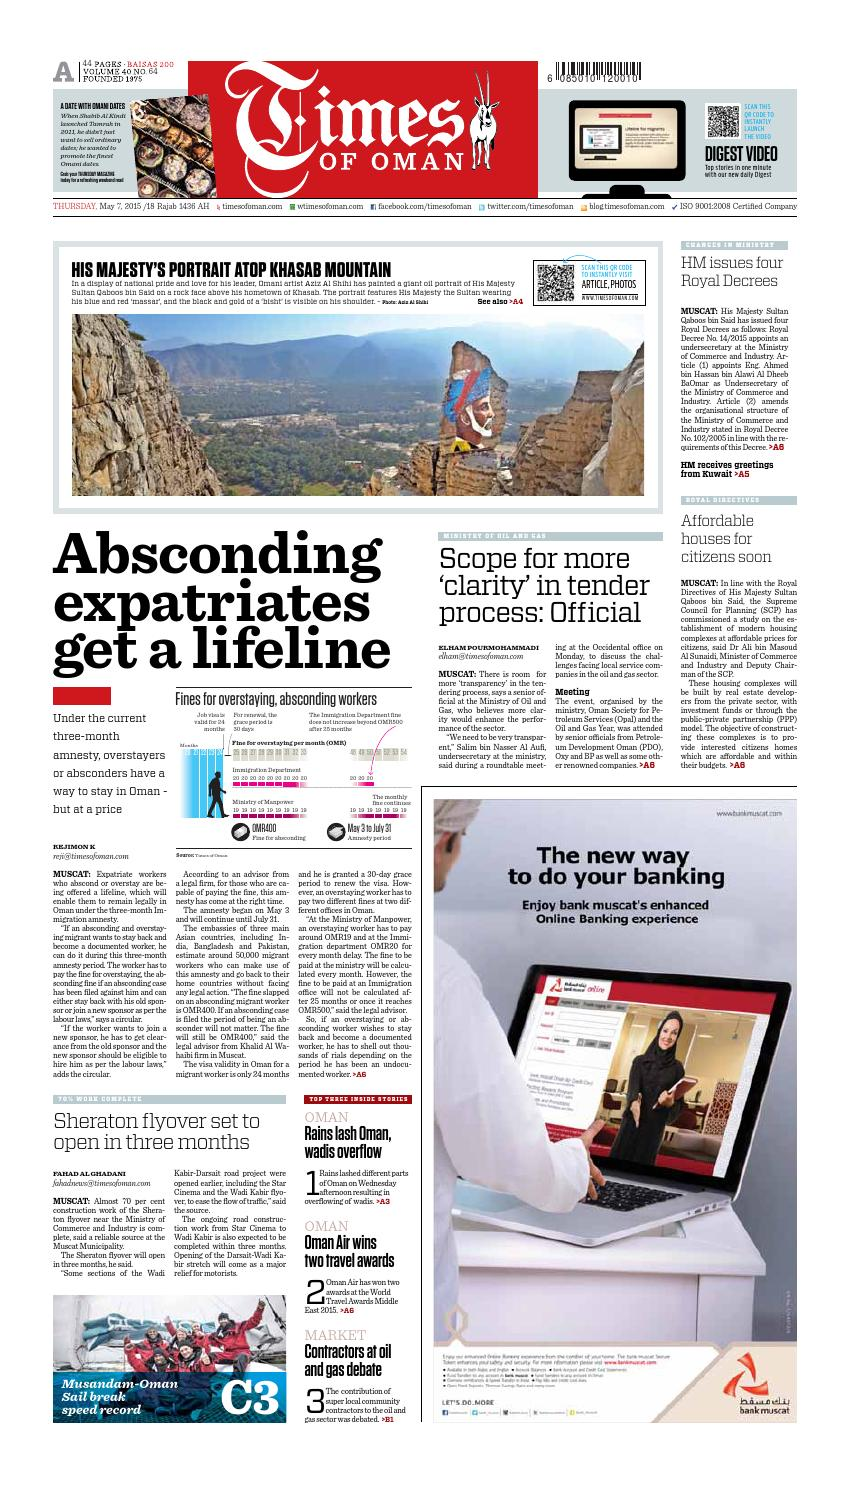 Times of Oman - May 7, 2015 by Muscat Media Group - issuu